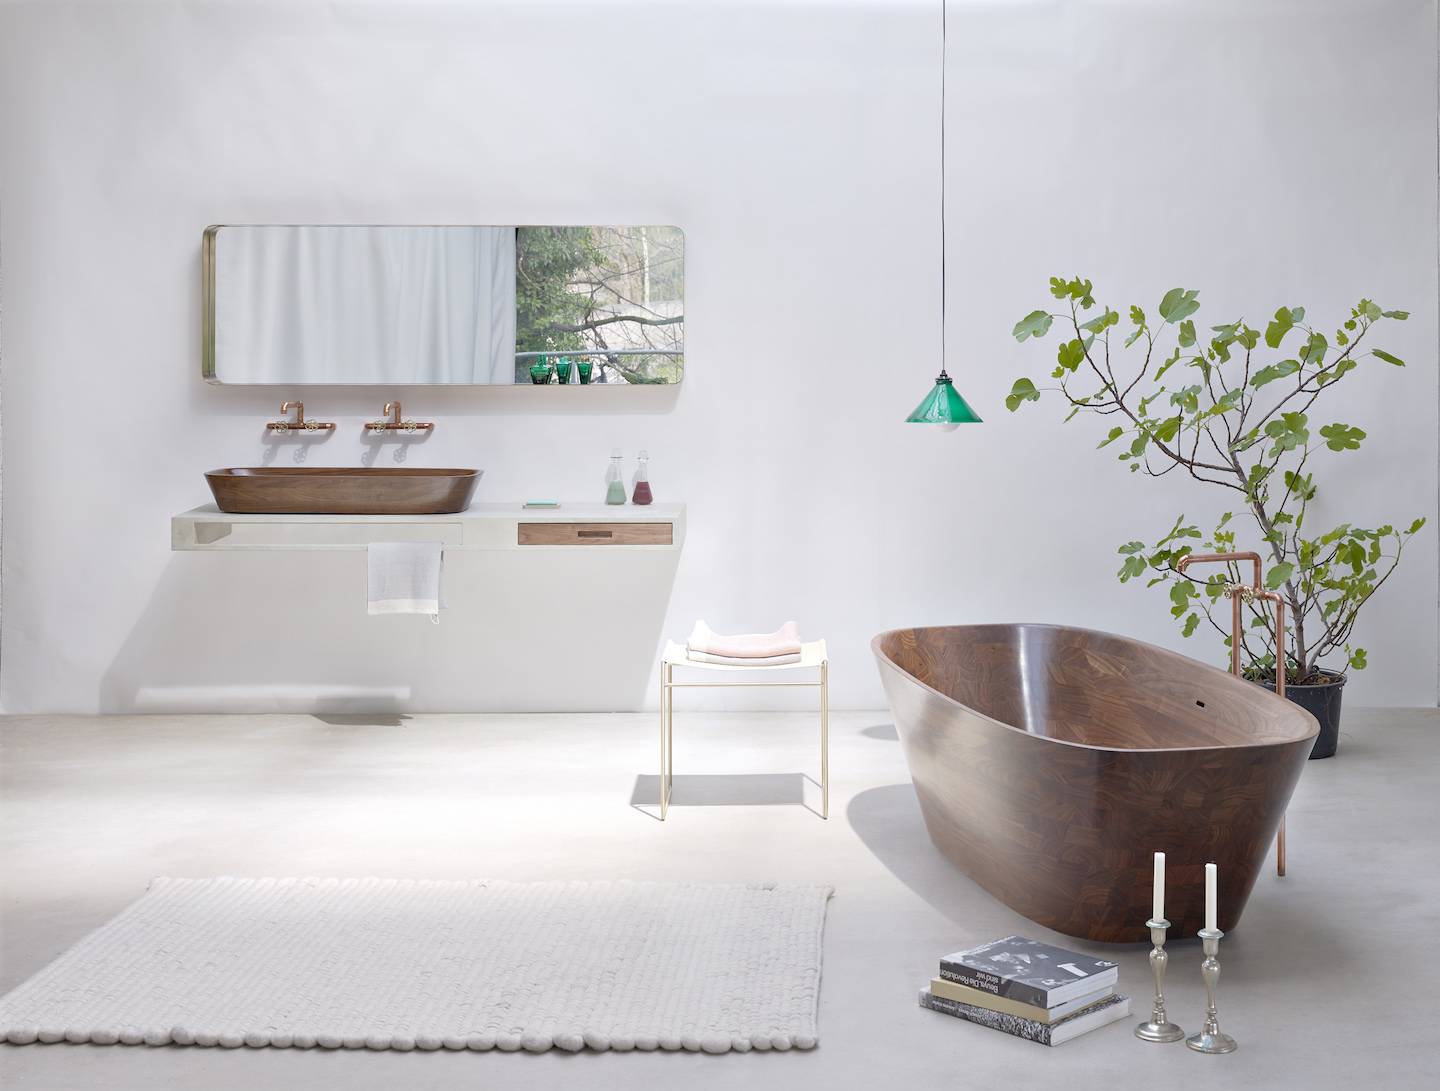 Shell Bathtub 01